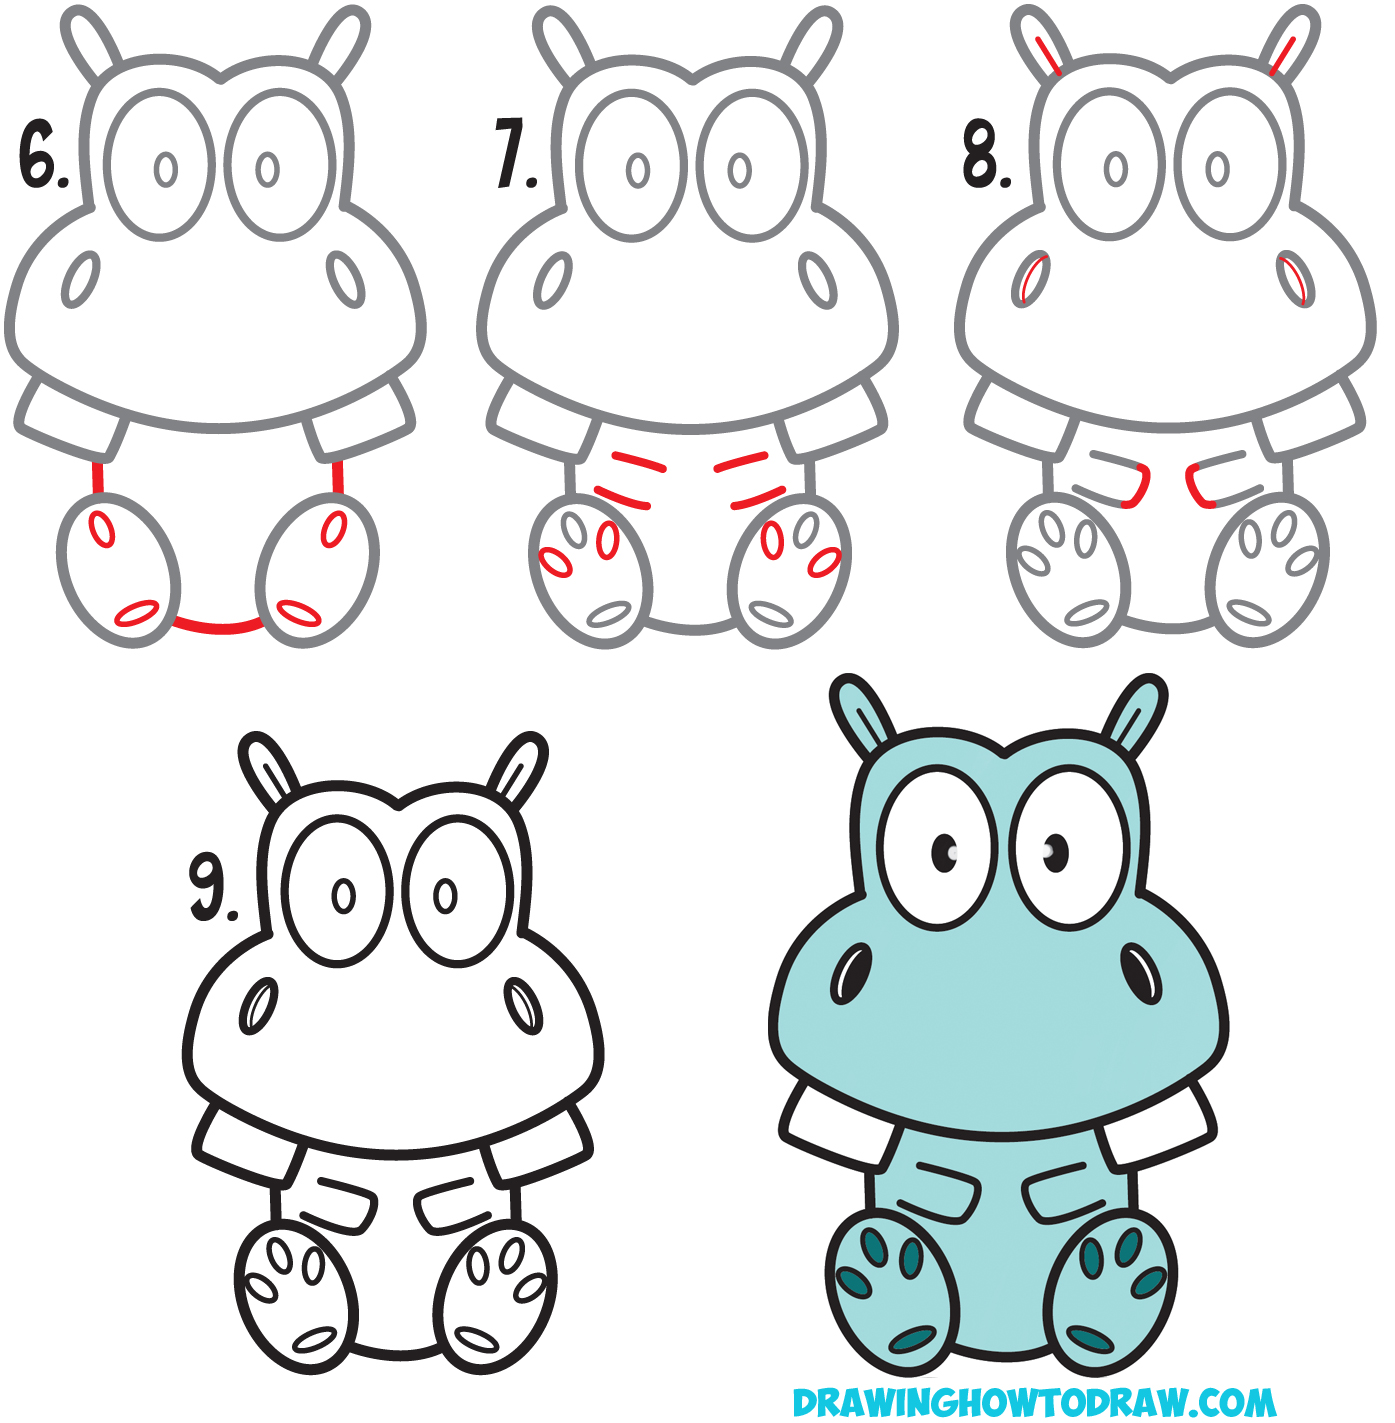 Learn How To Draw A Cute Kawaii Cartoon Hippo Easy Step By Drawing Tutorial